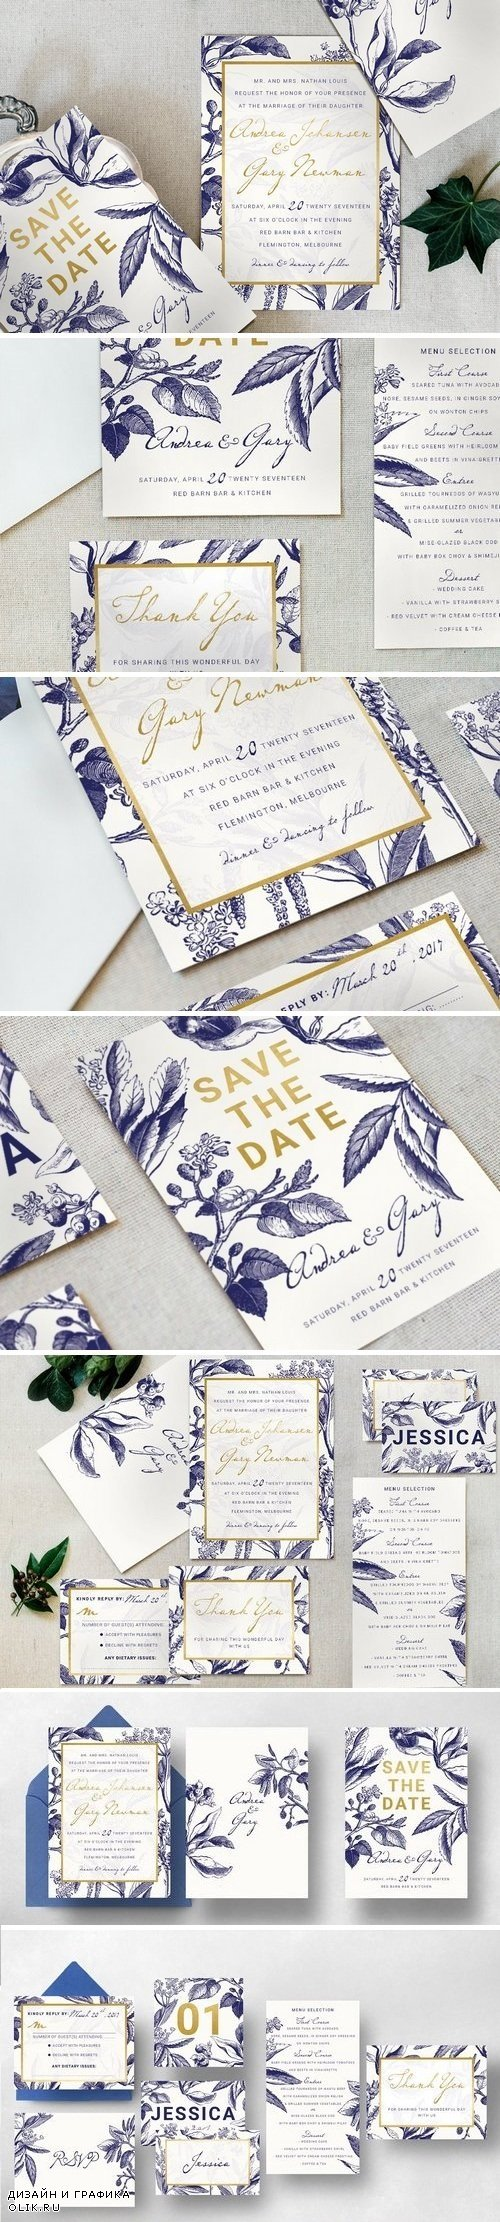 Gold & Navy Wedding Invitation Suite - 1035710